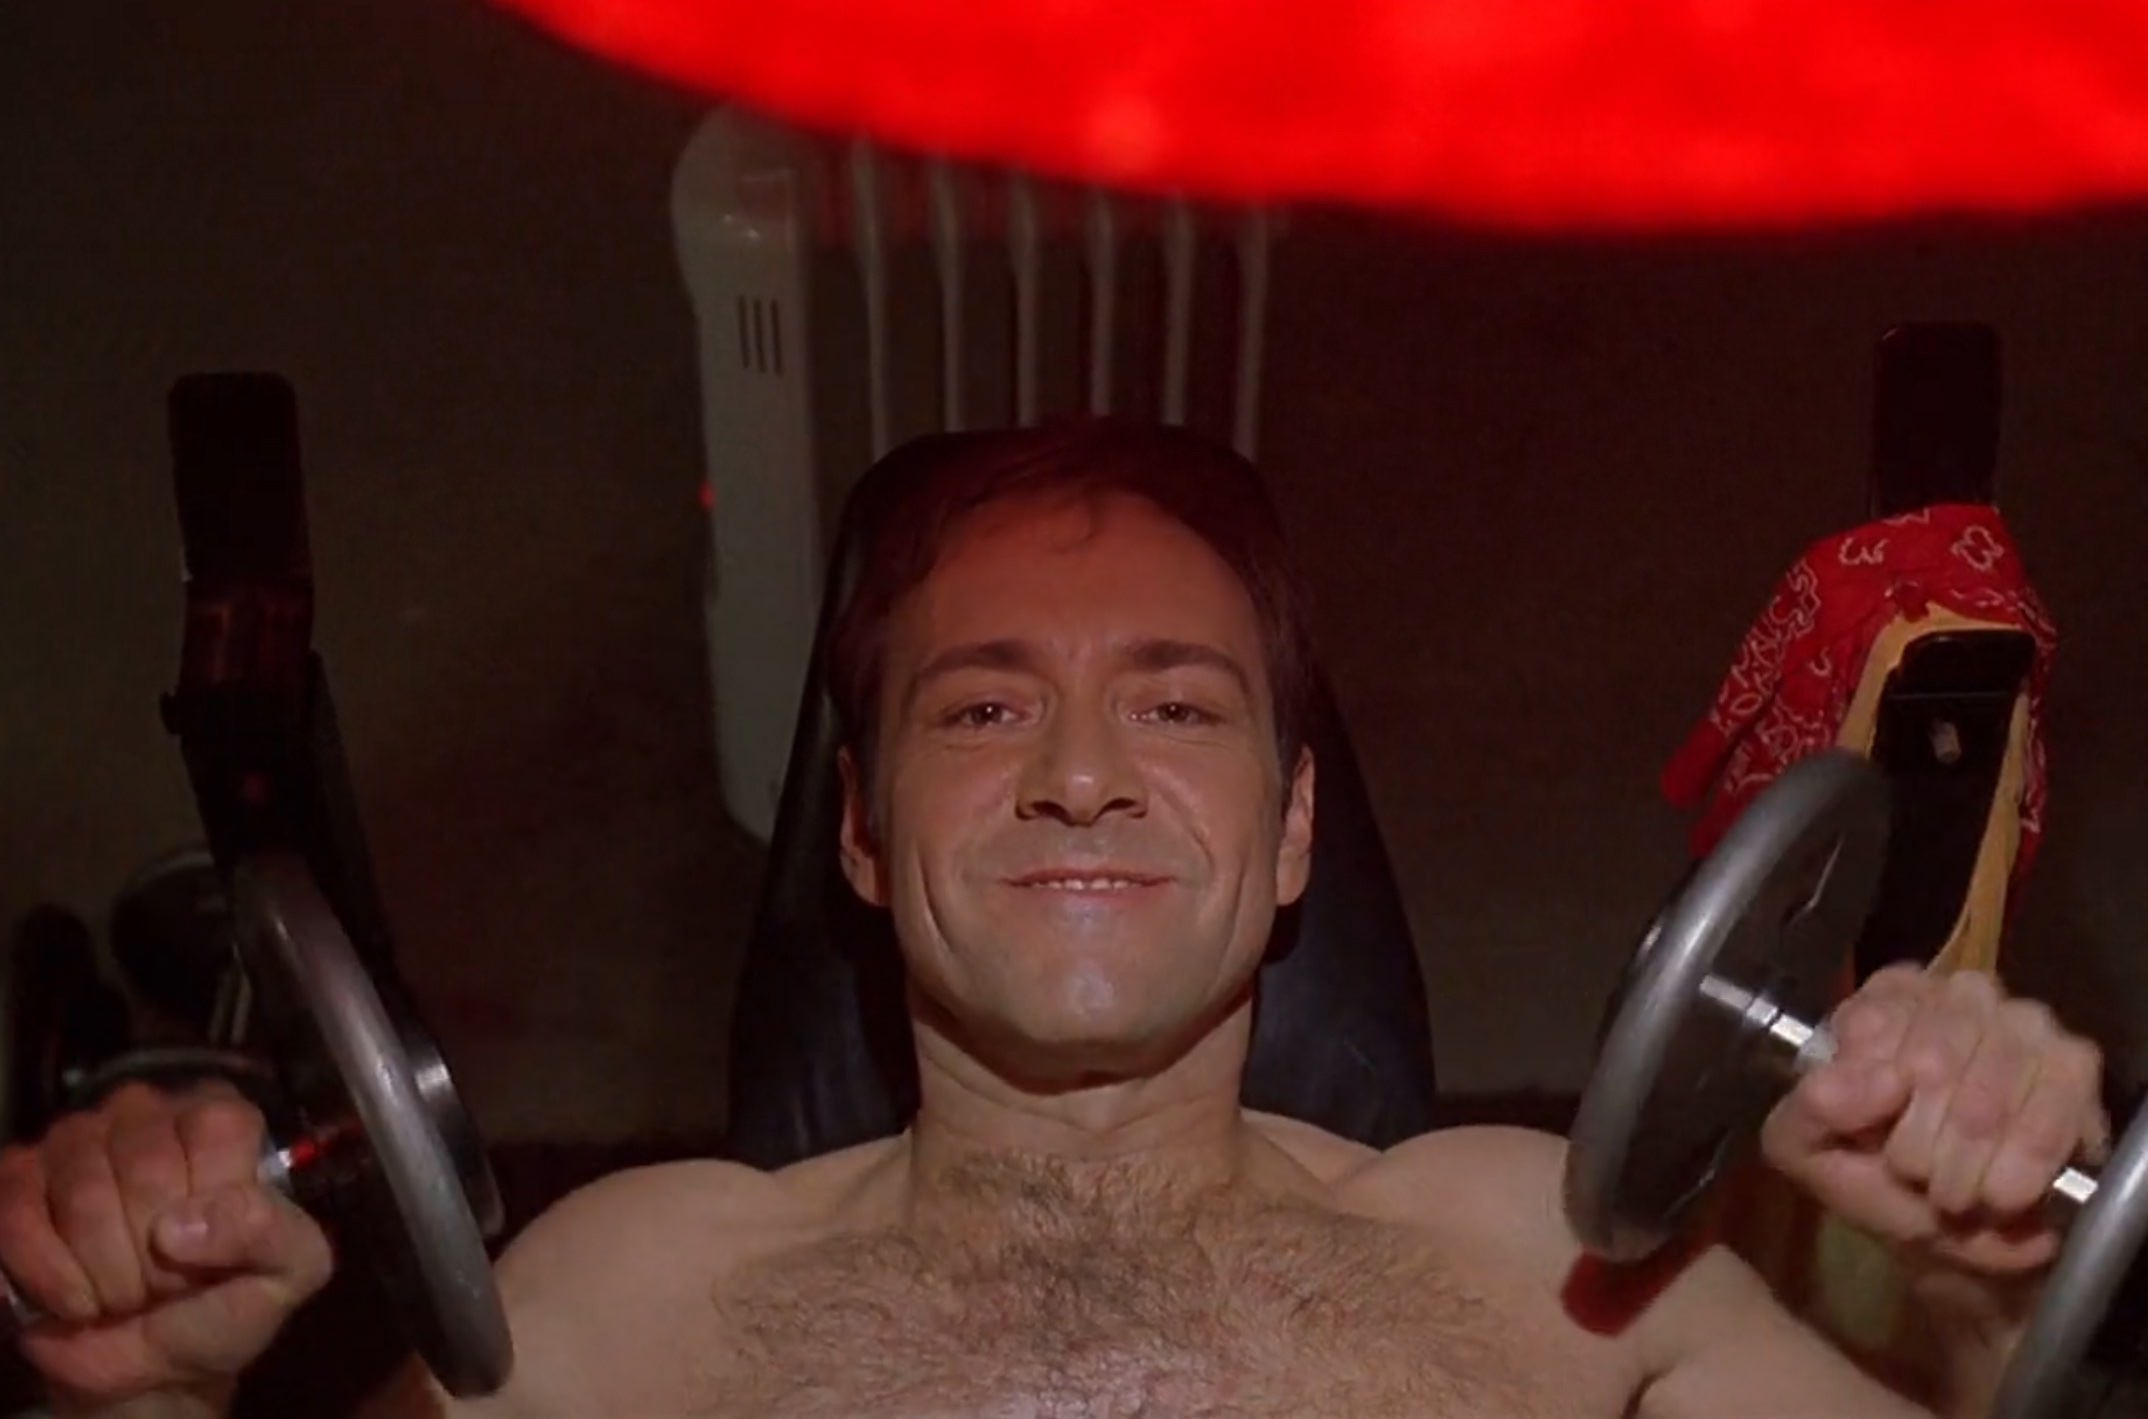 American beauty kevin spacey